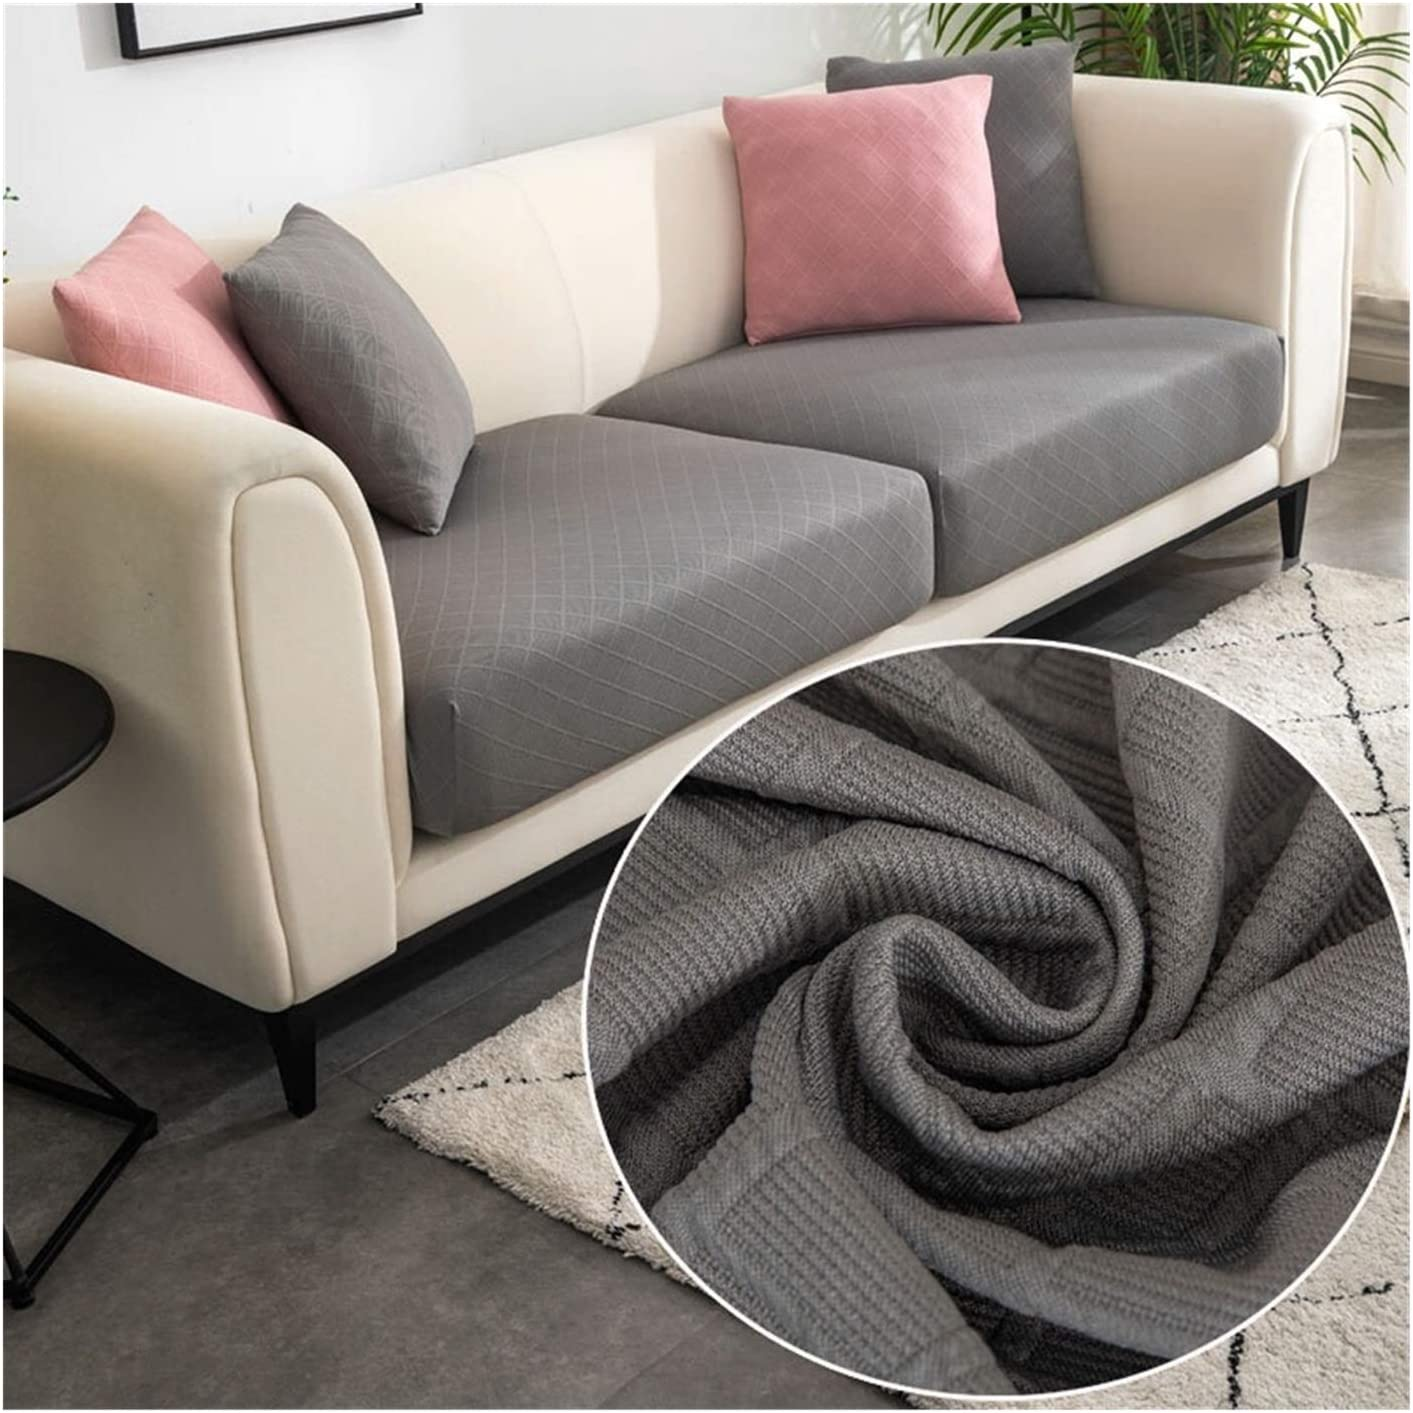 JPMSB Max 48% OFF Solid Color Furniture Protector 55% OFF P Sofa Cover Cushion